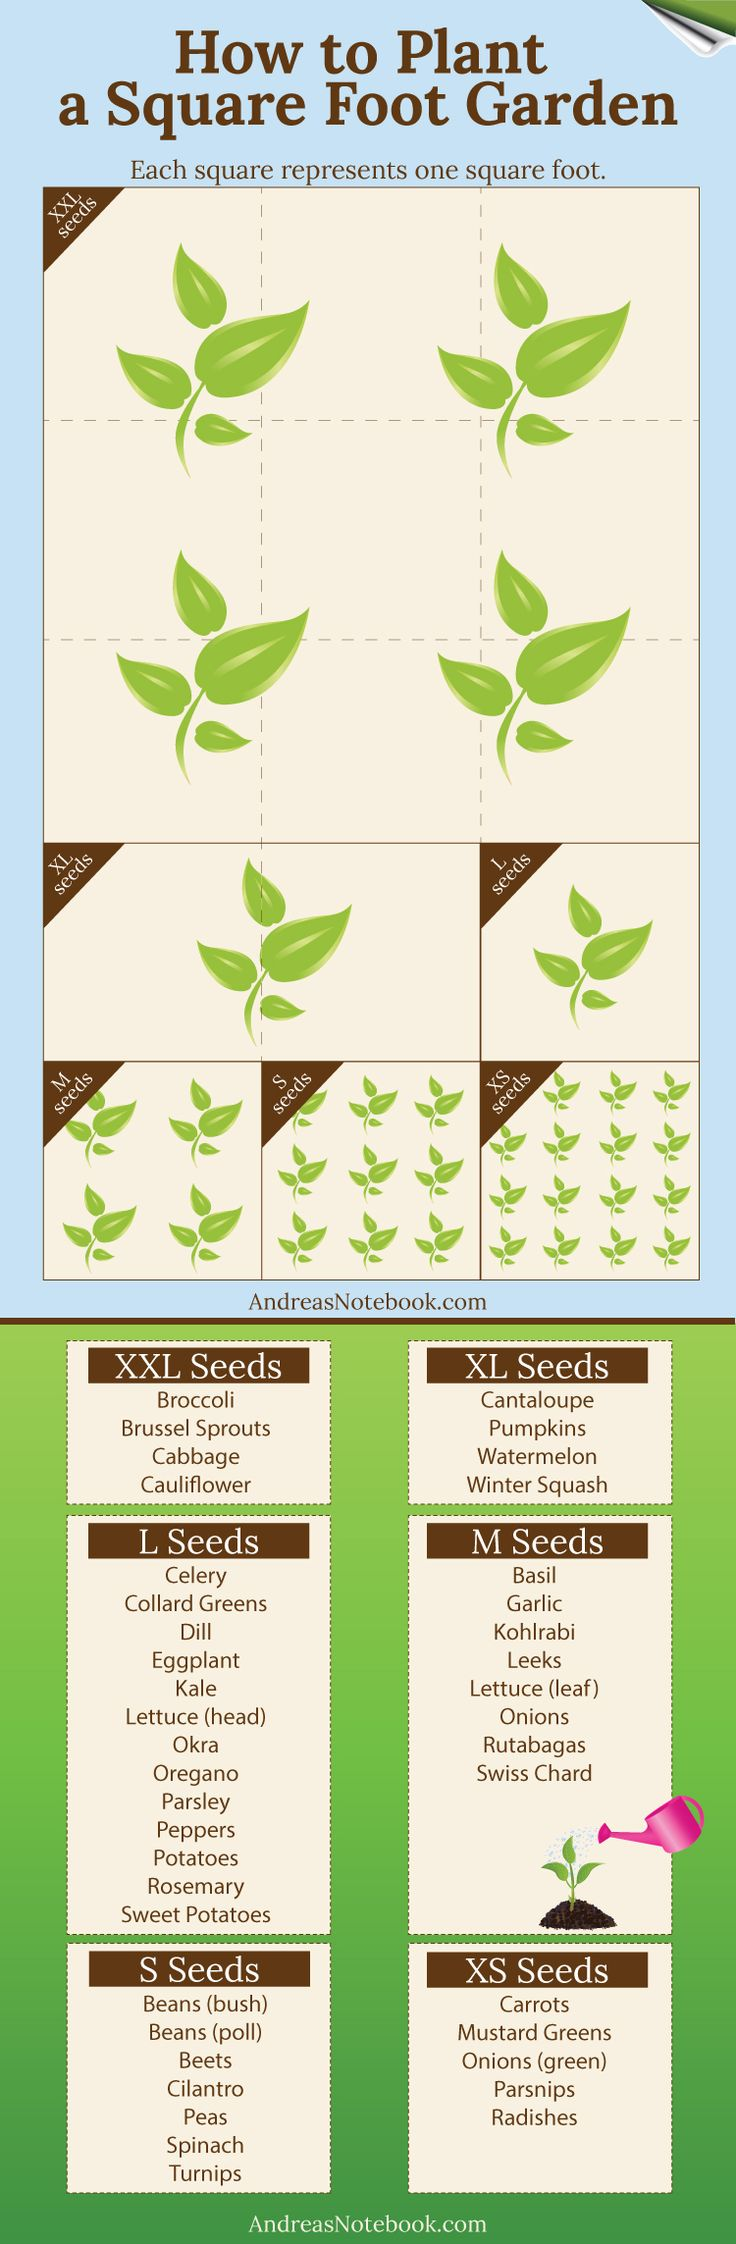 Infographic - How to plant a square foot garden